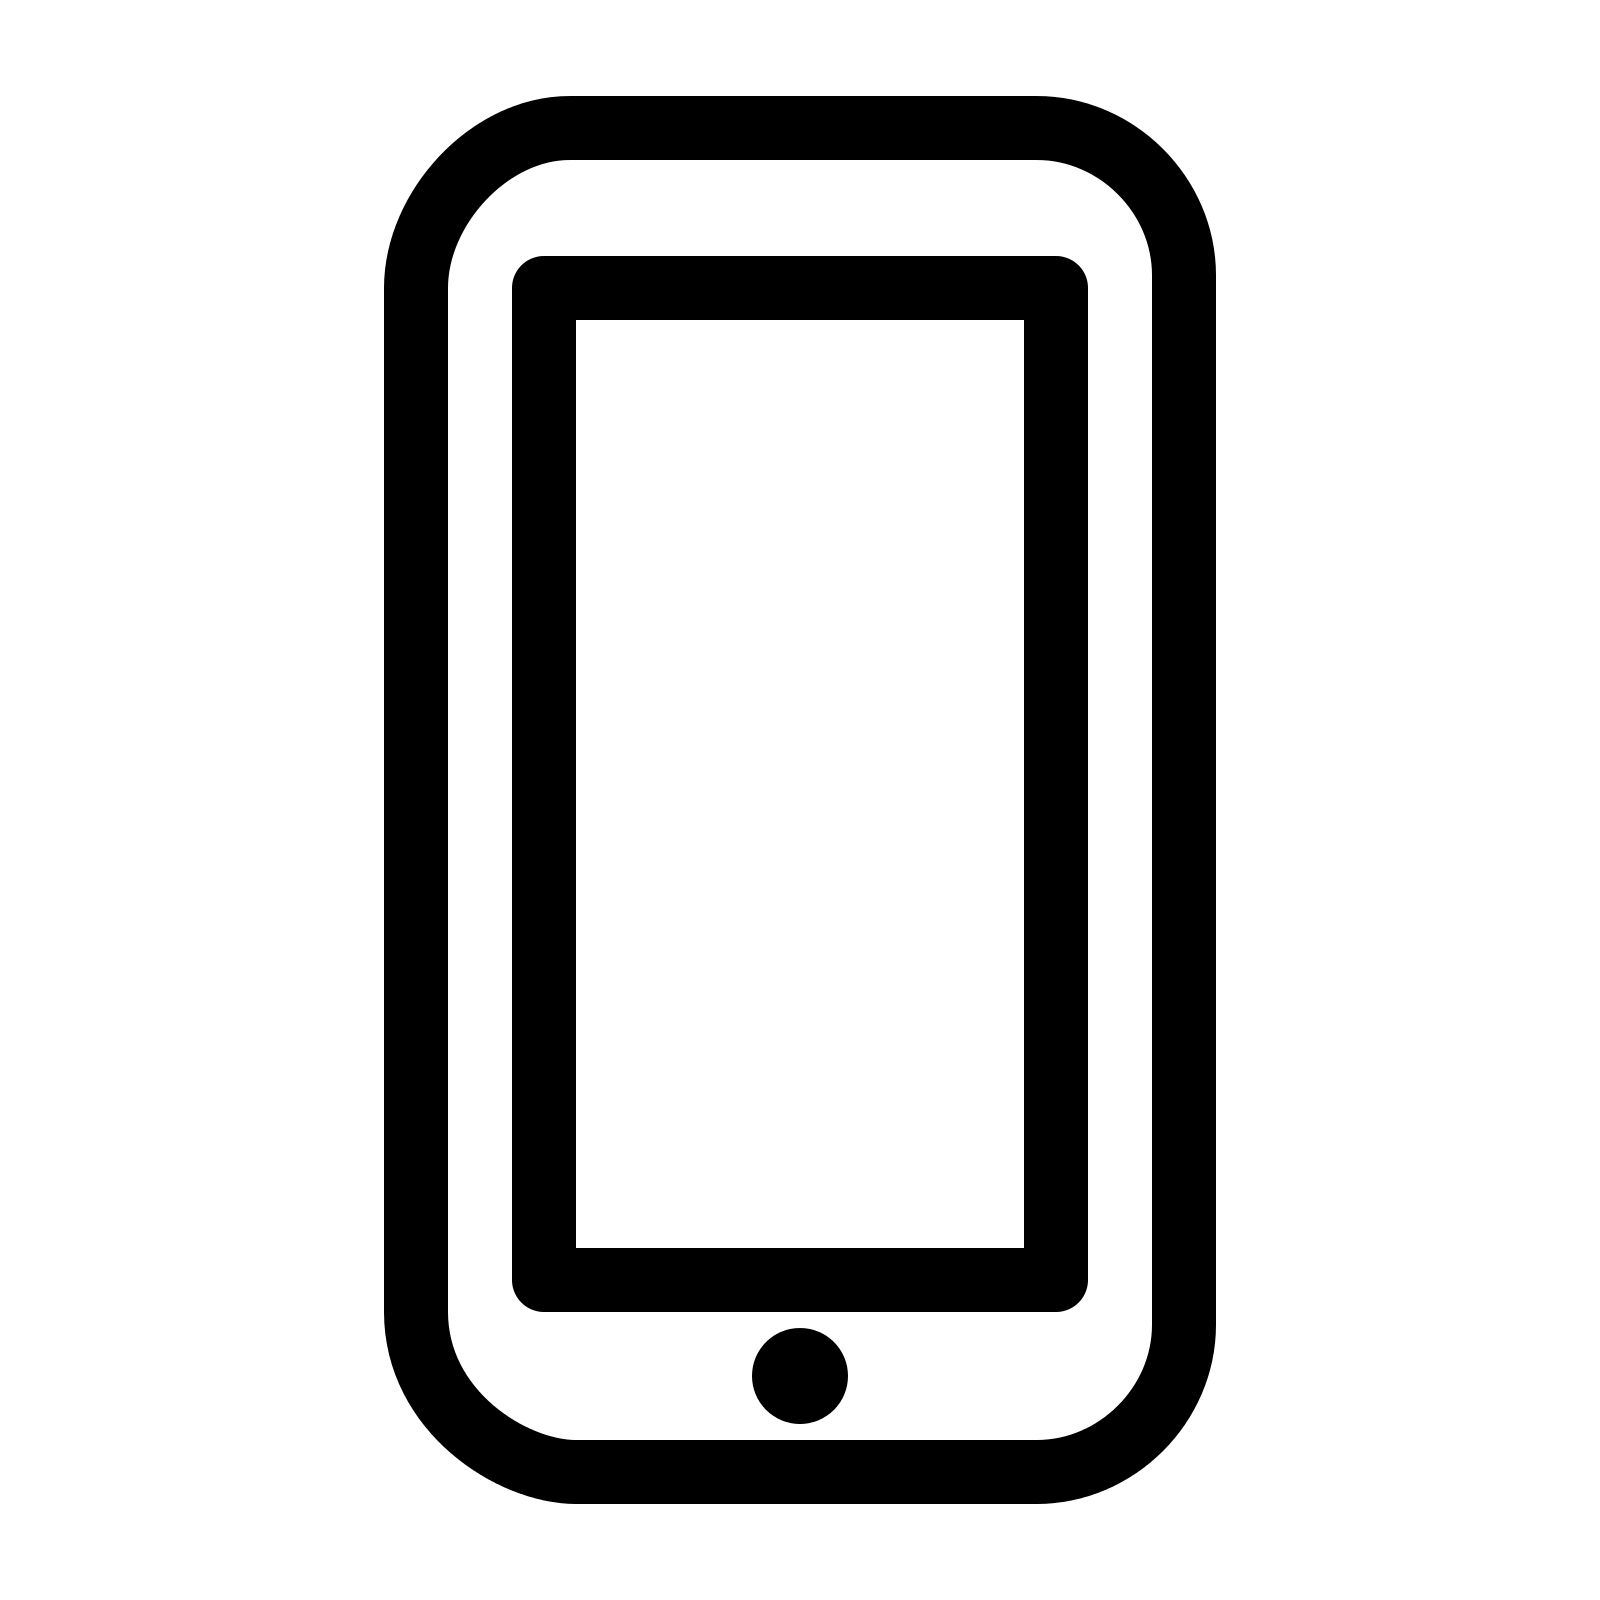 Iphone clipart svg Free iPhone PNG icon Download